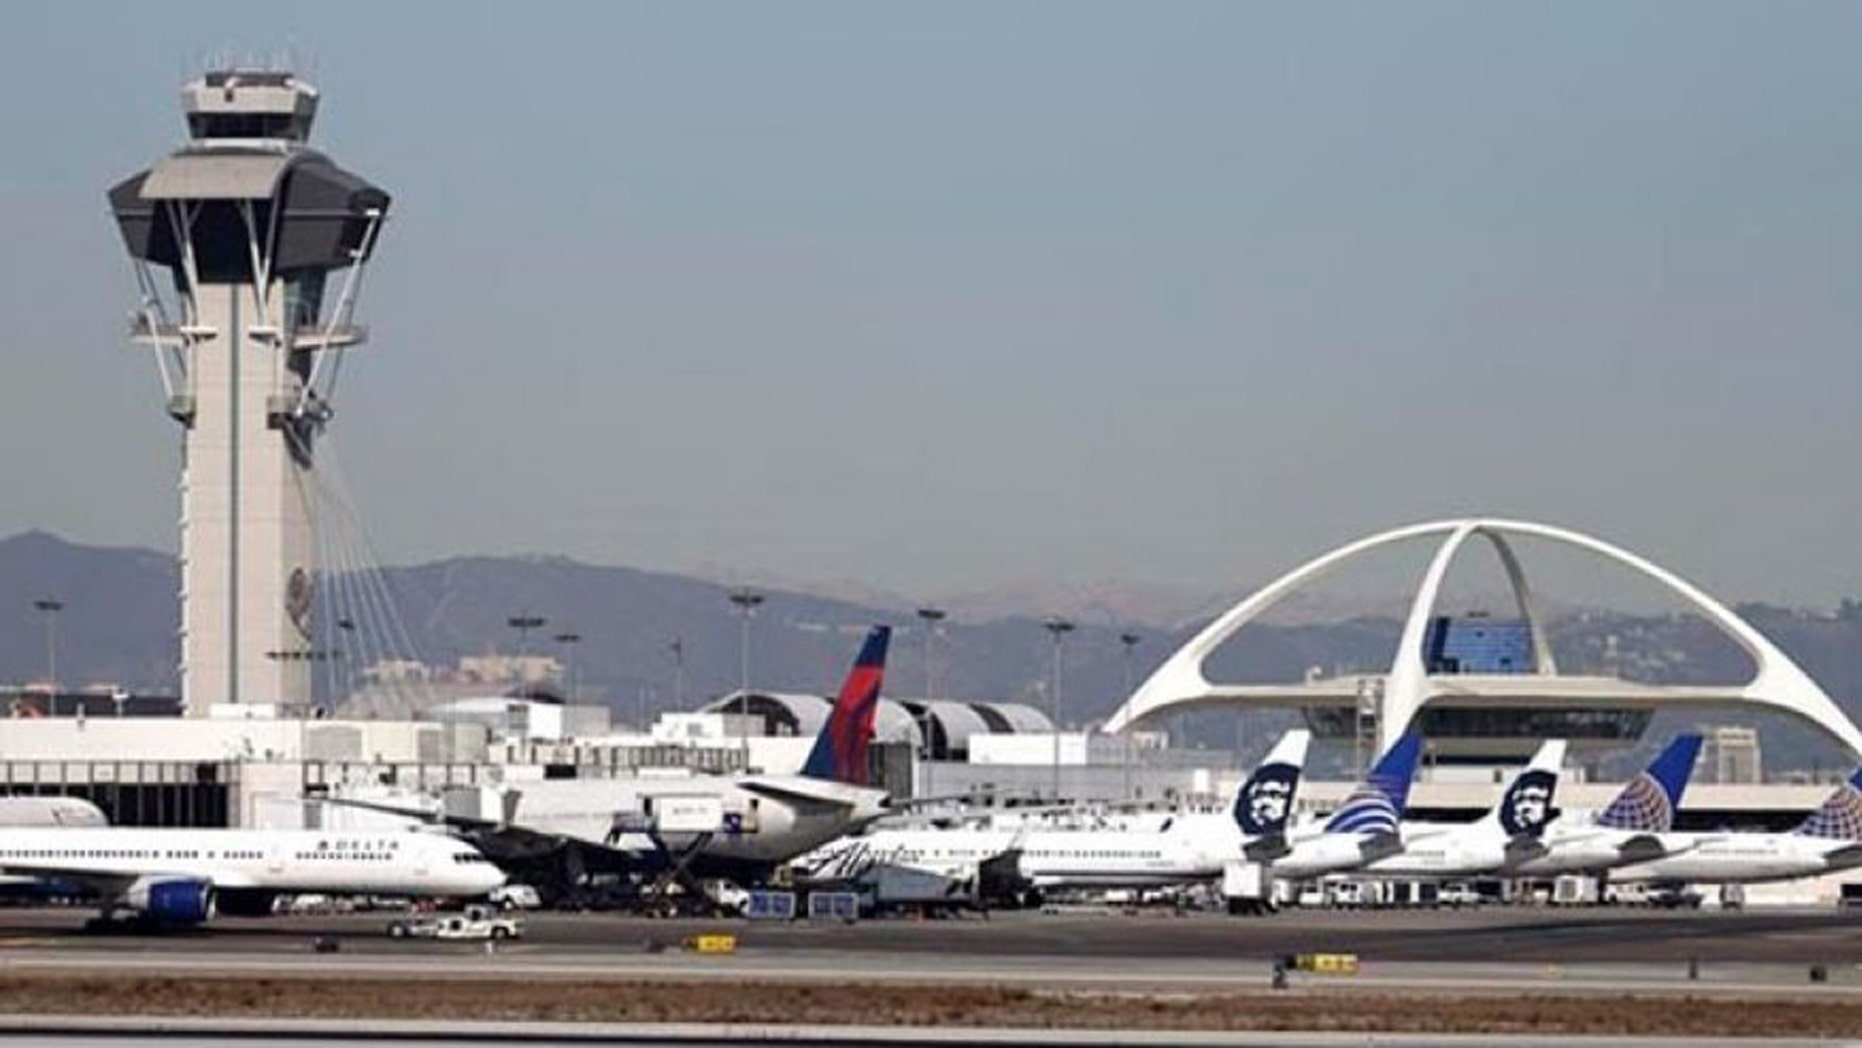 Nov. 1, 2013: Airplanes sit on the tarmac at Los Angeles International Airport